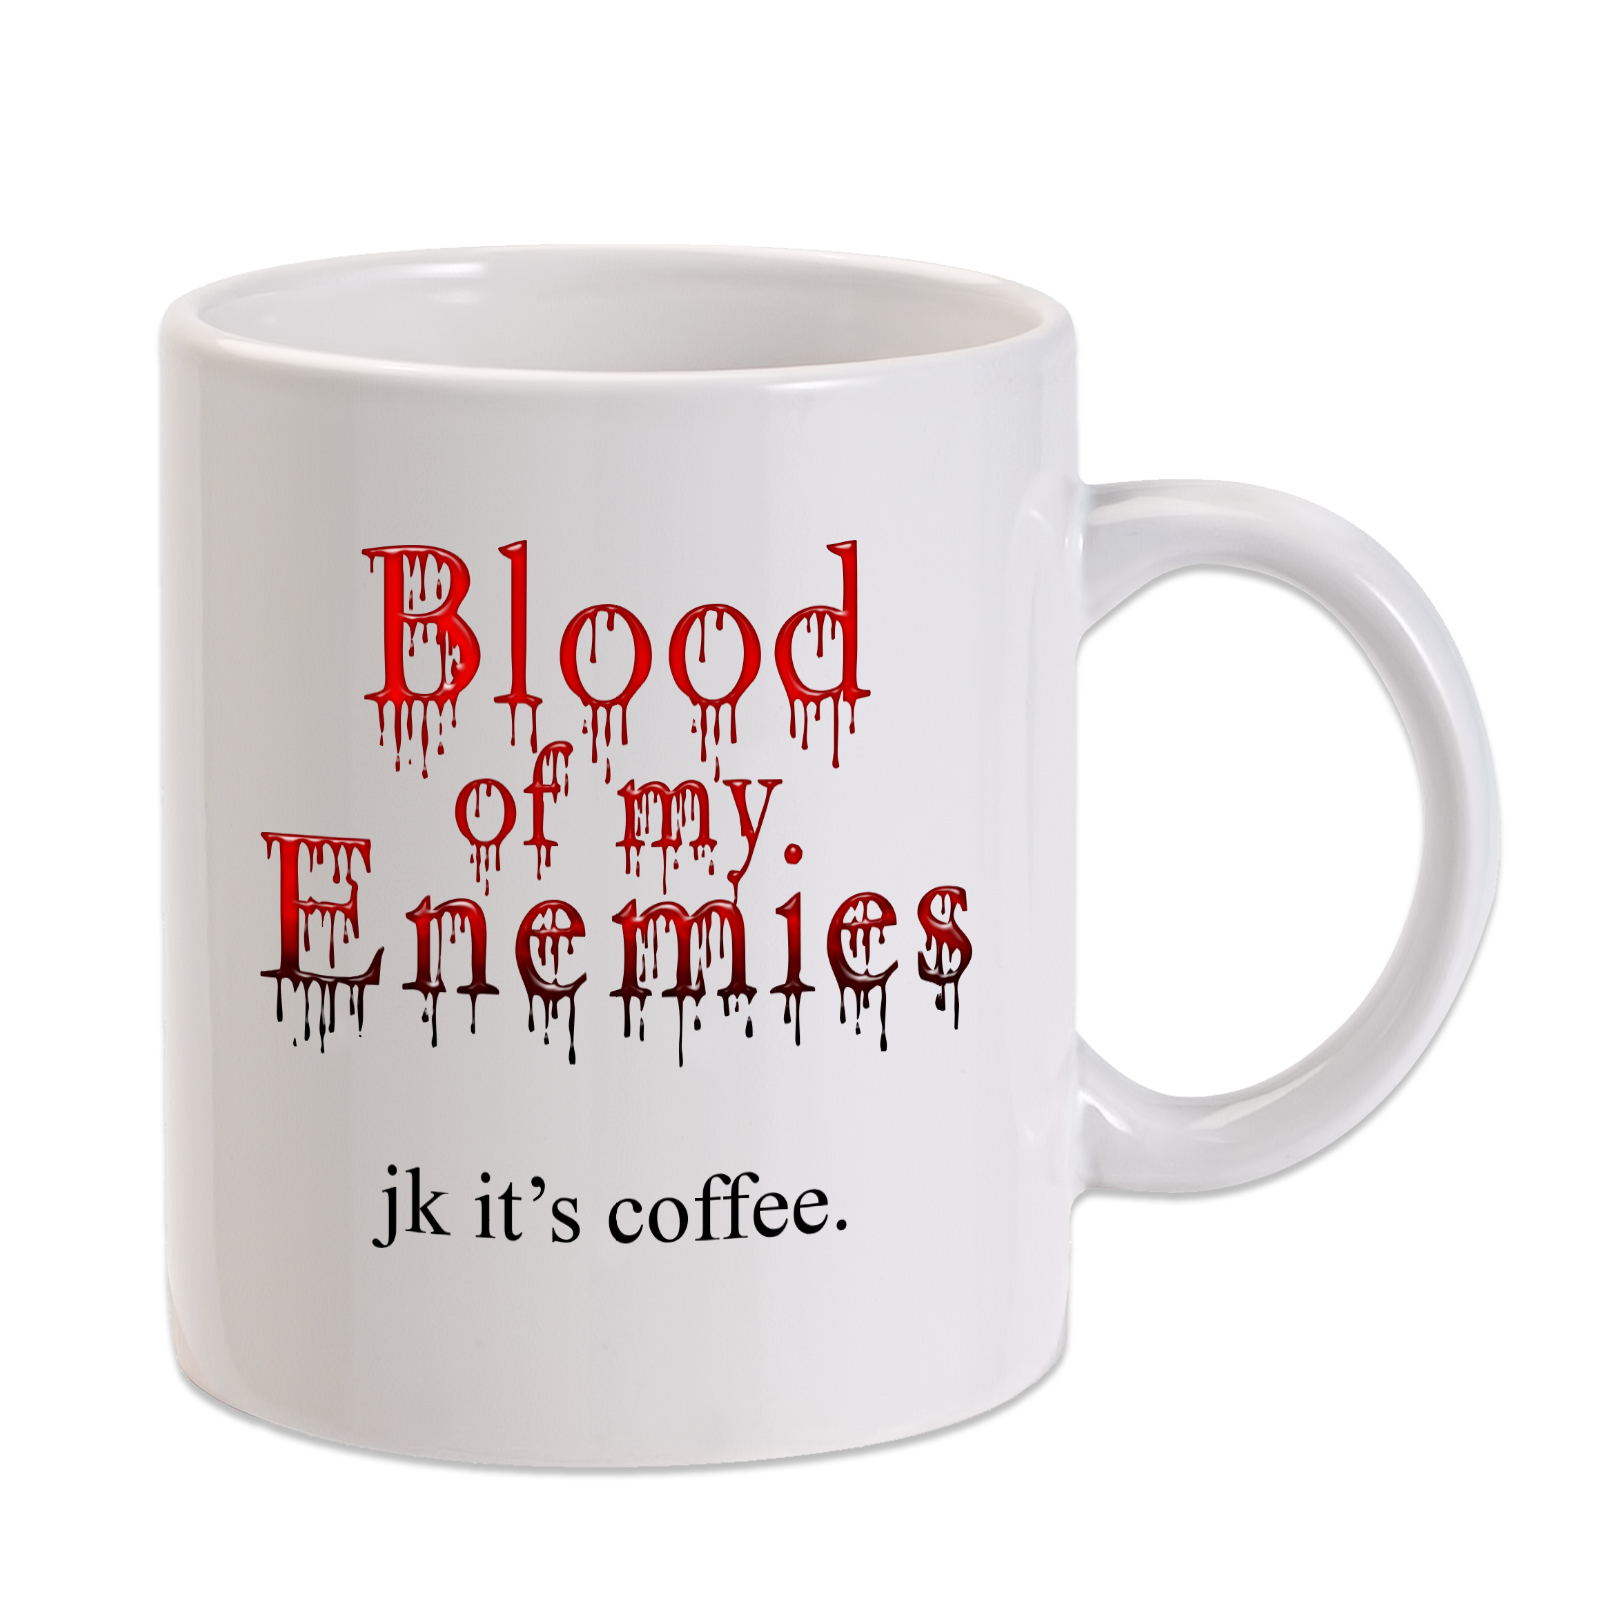 Jk 11 Enemies Coffee Of Blood My It's OzNovelty Mug ZOPkXiuT